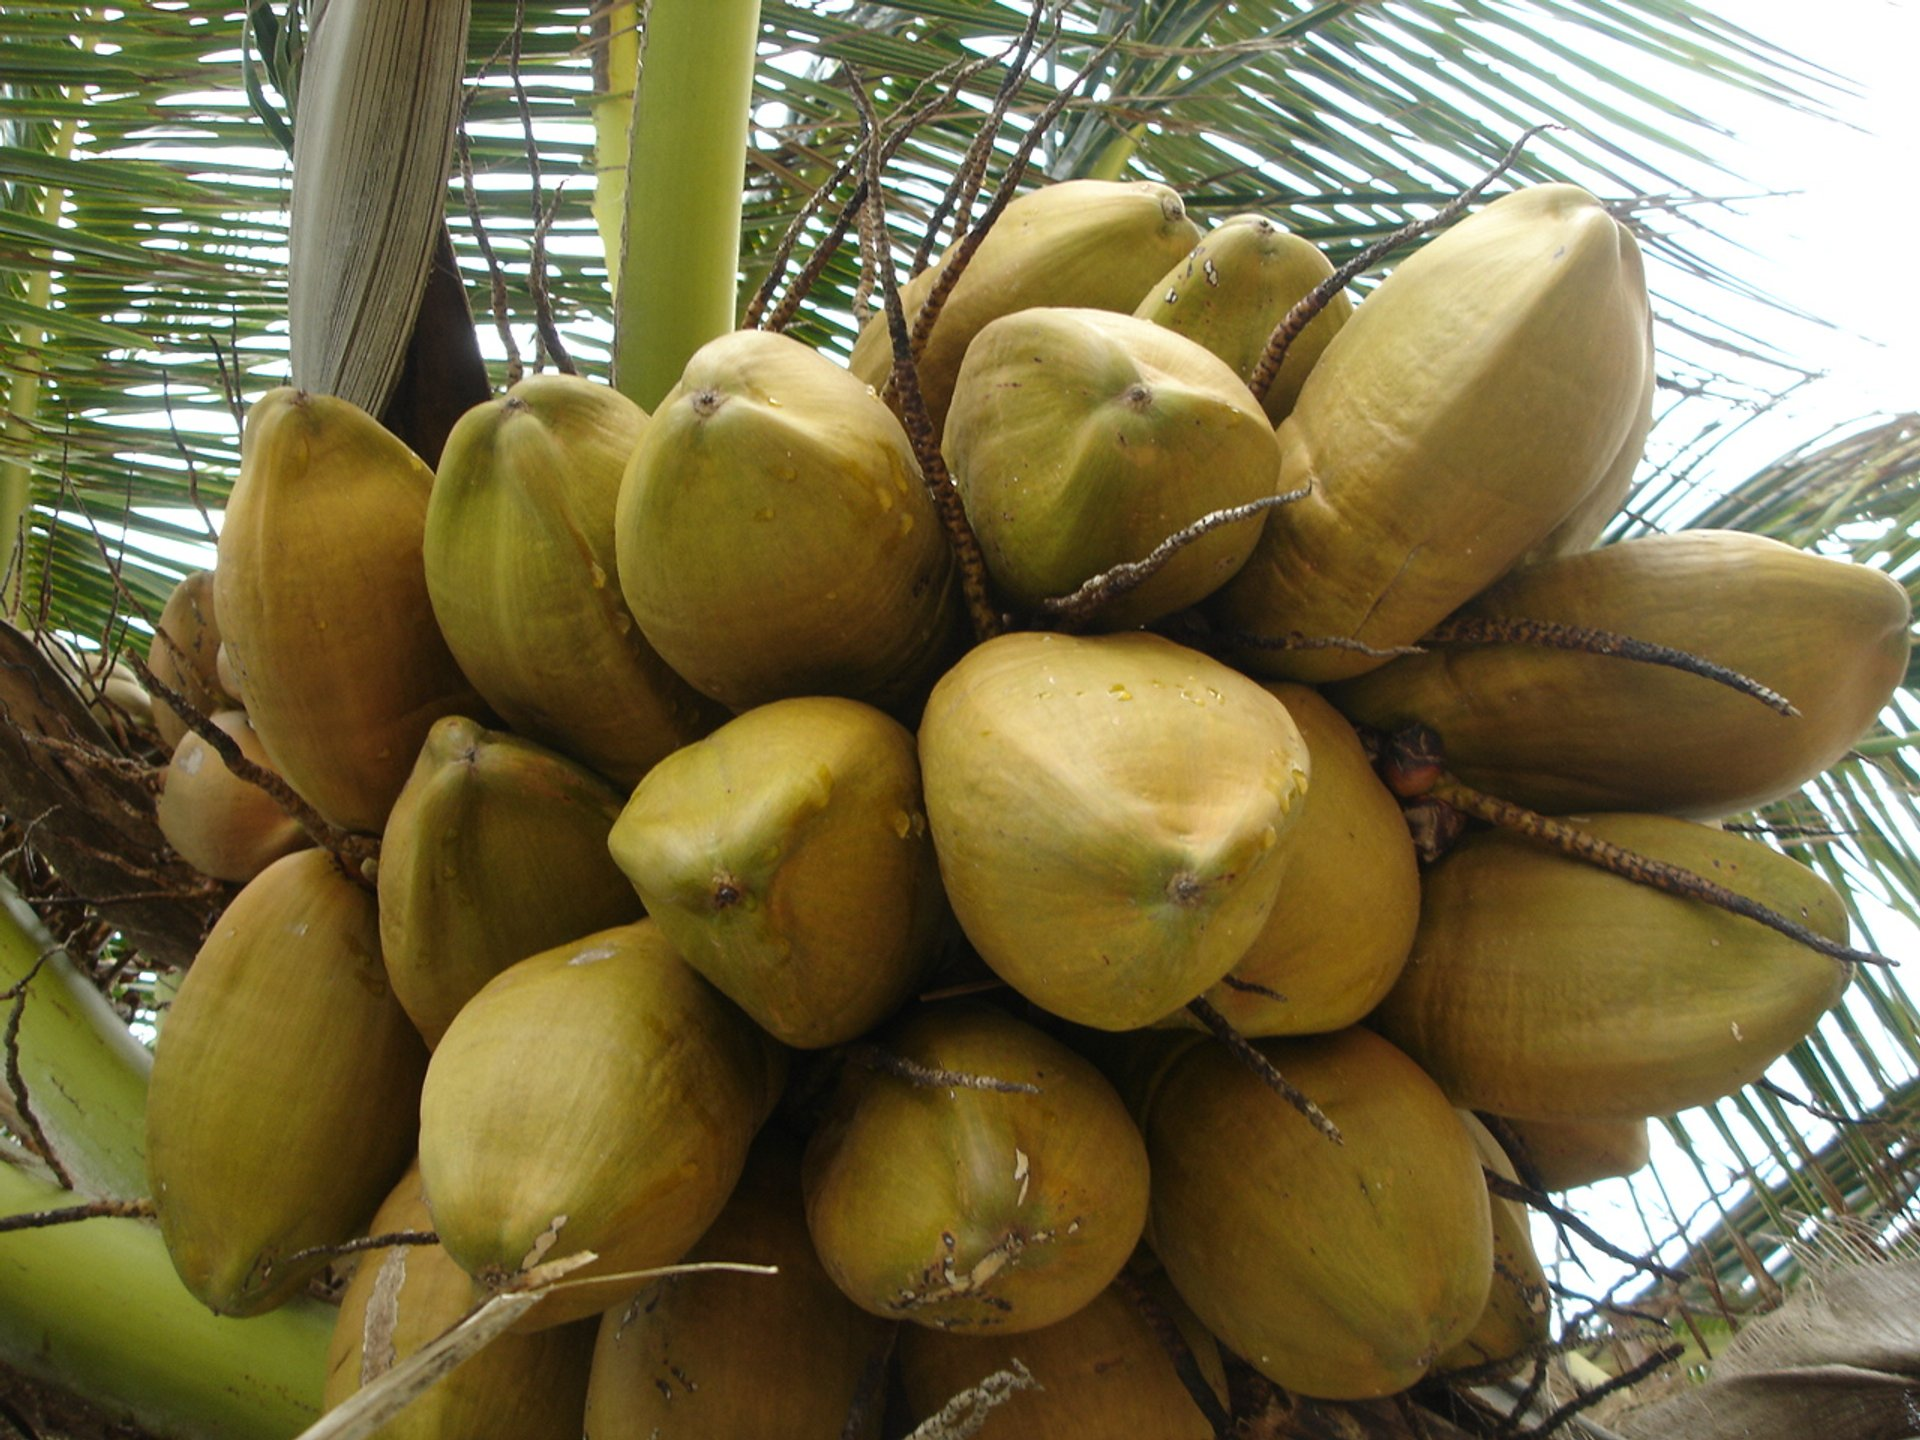 Coconuts in Maldives 2020 - Best Time